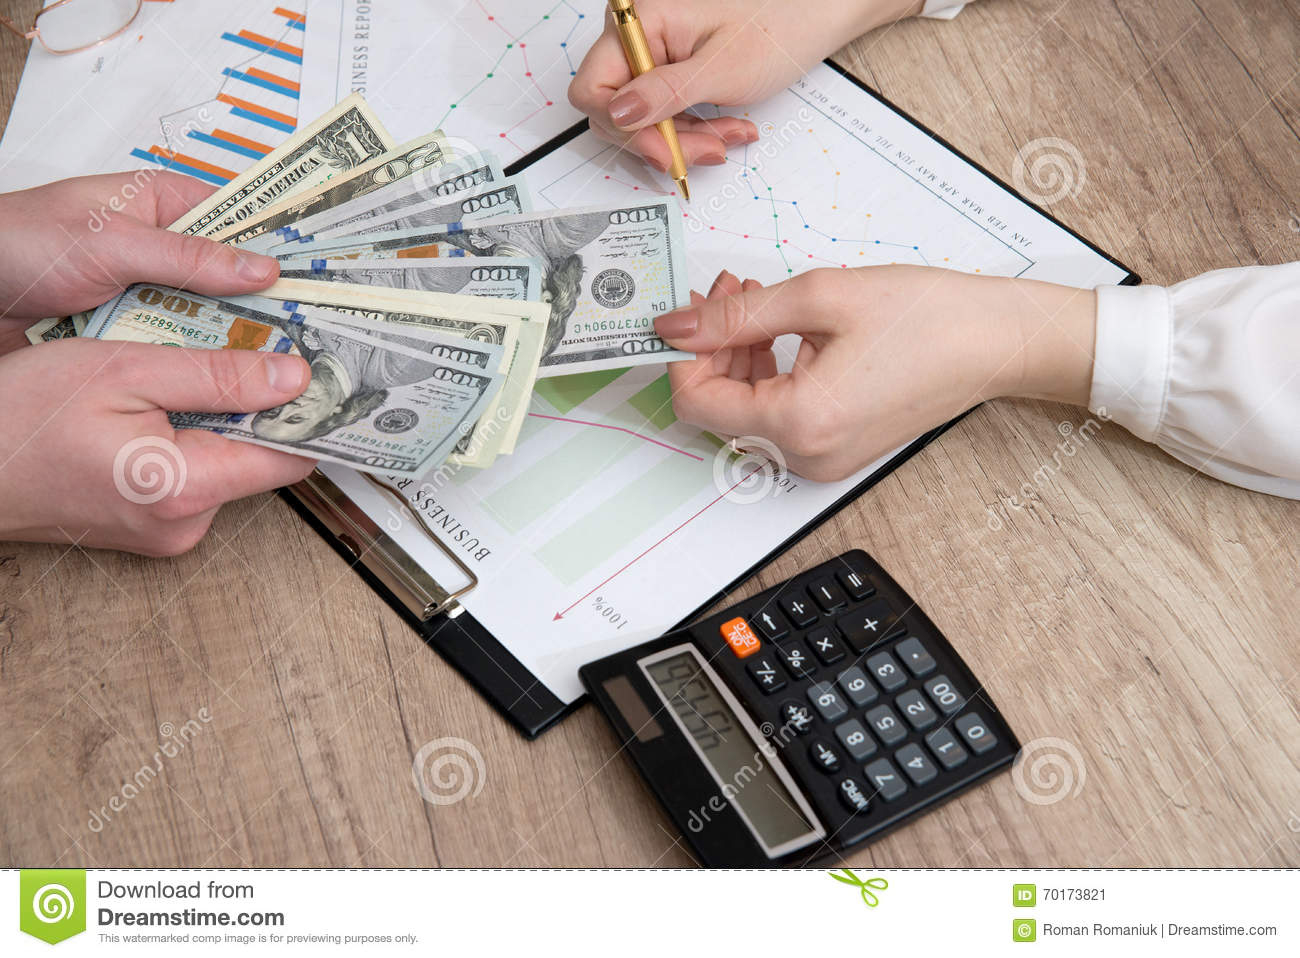 Human hands exchanging money above business graph